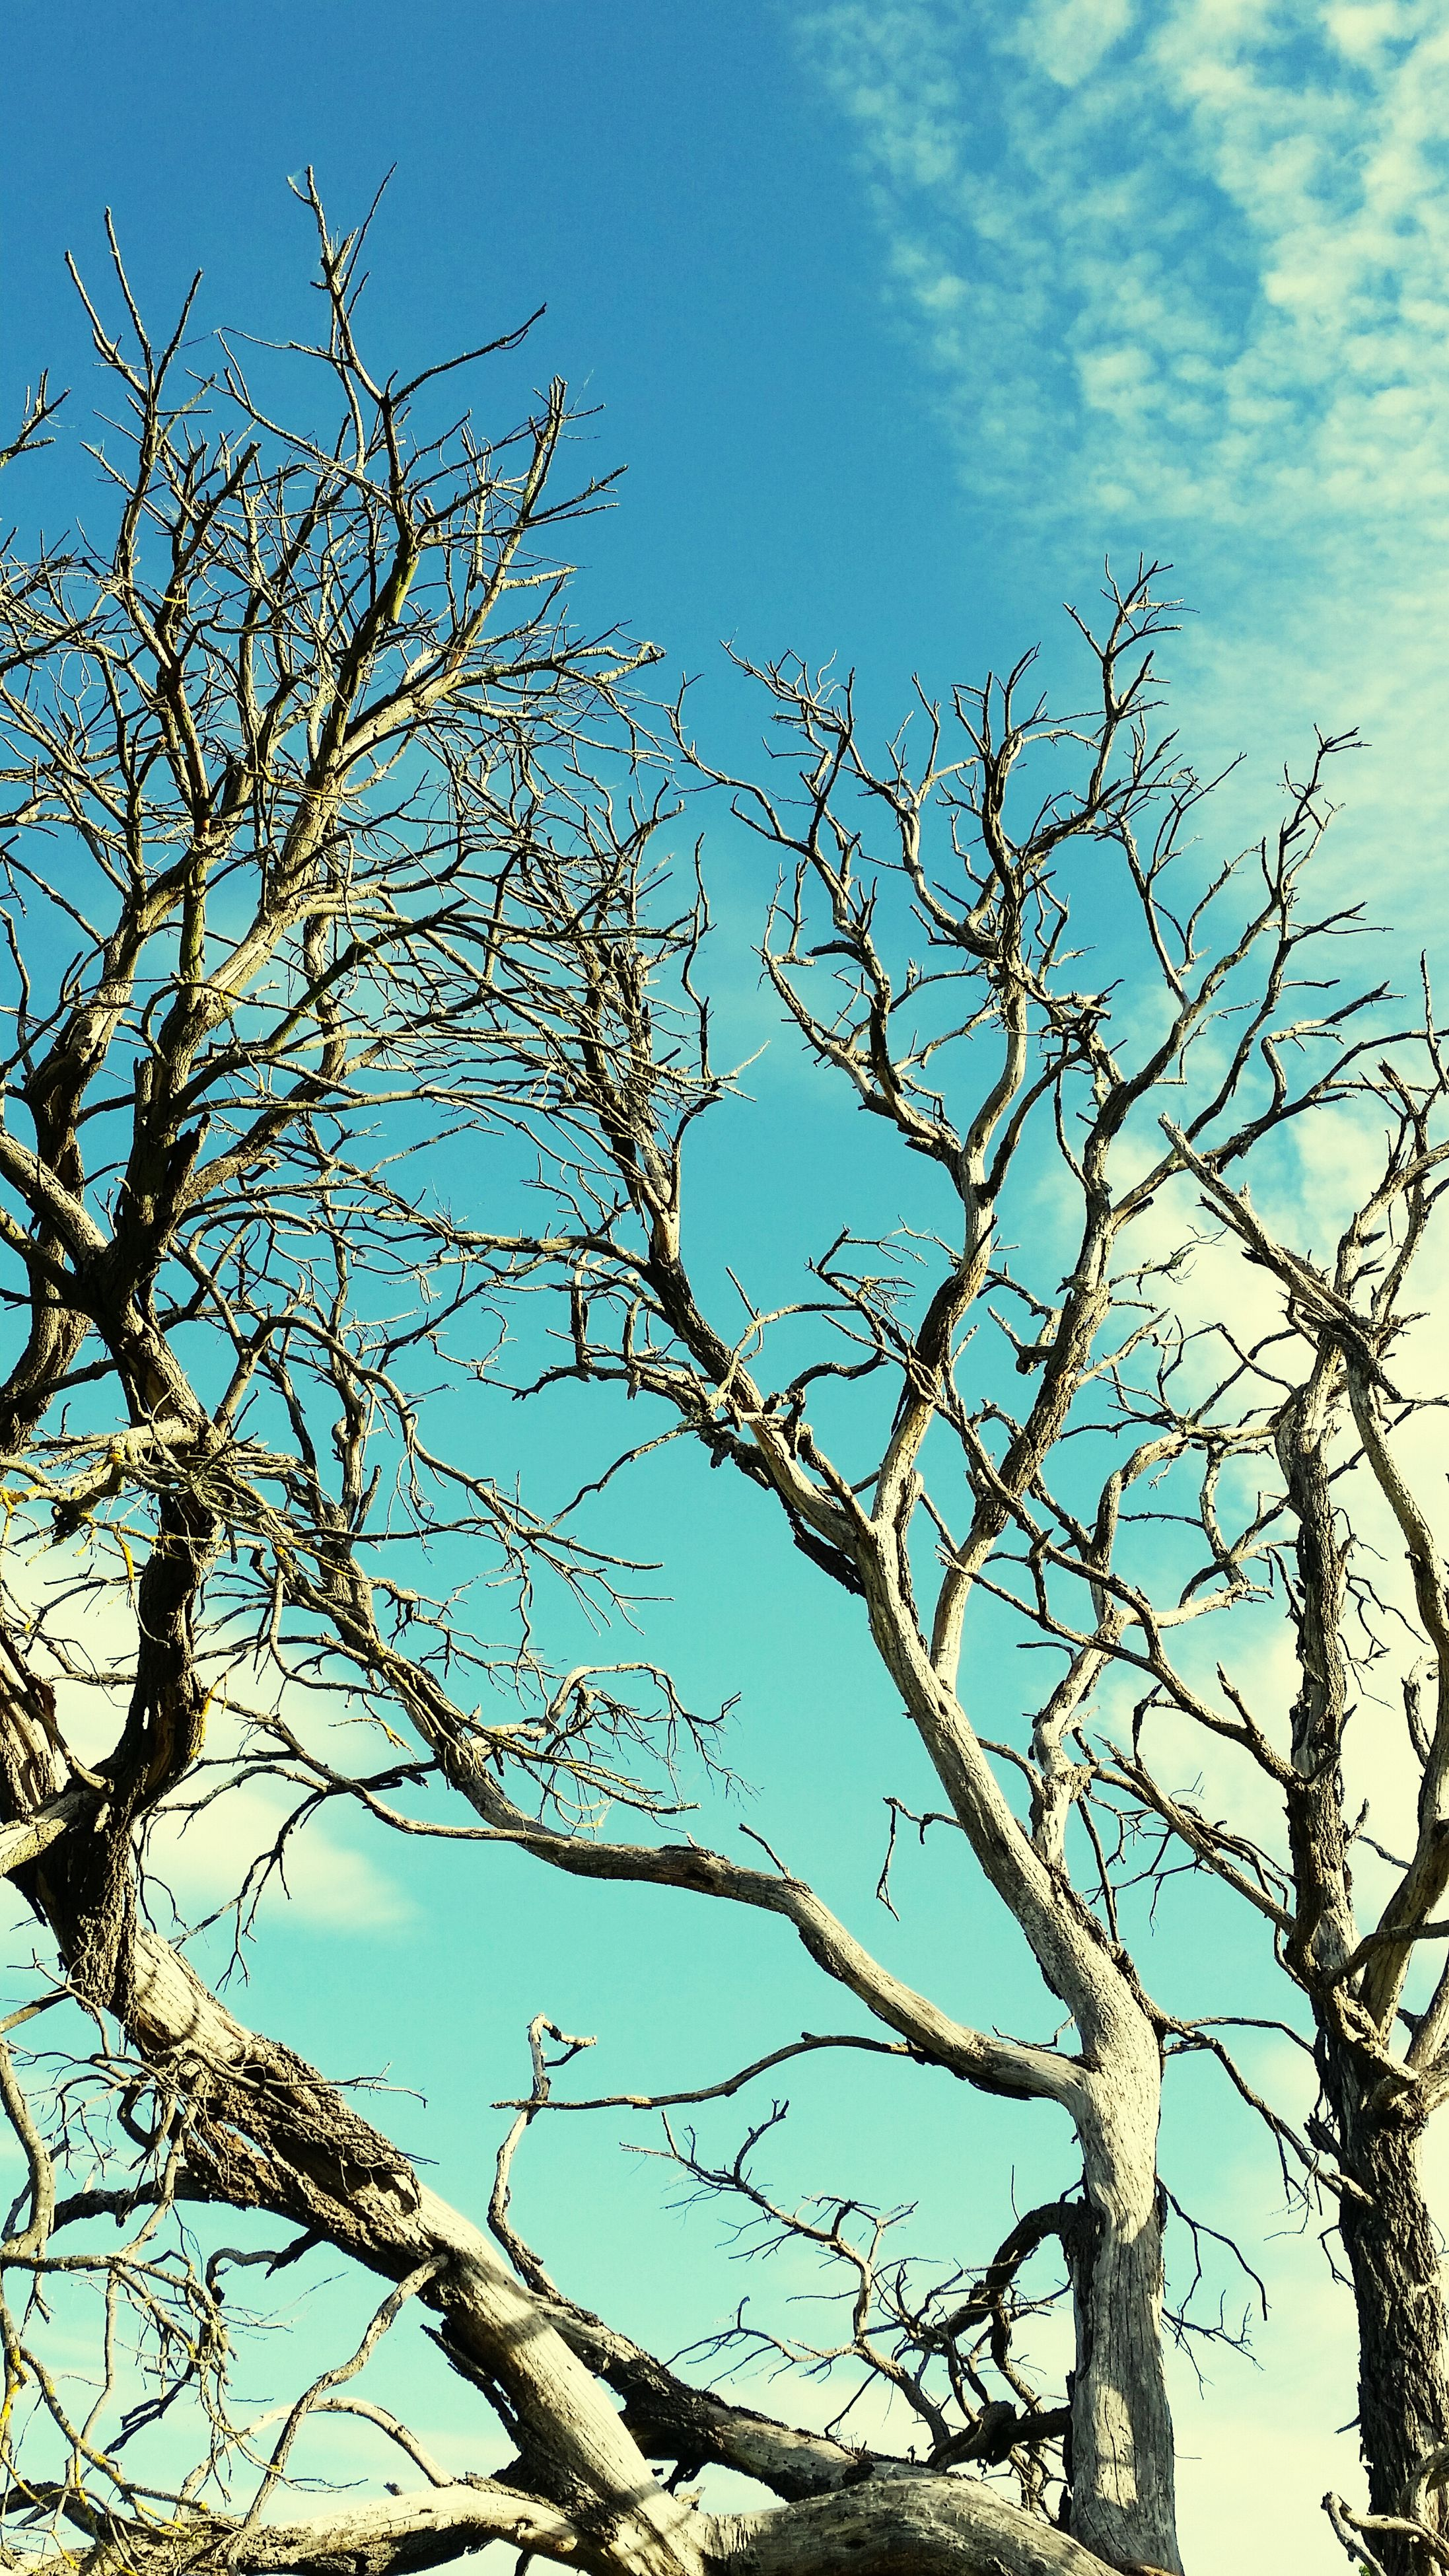 low angle view, bare tree, branch, tree, sky, nature, tranquility, blue, beauty in nature, growth, day, clear sky, outdoors, no people, scenics, cloud - sky, tree trunk, dead plant, cloud, high section